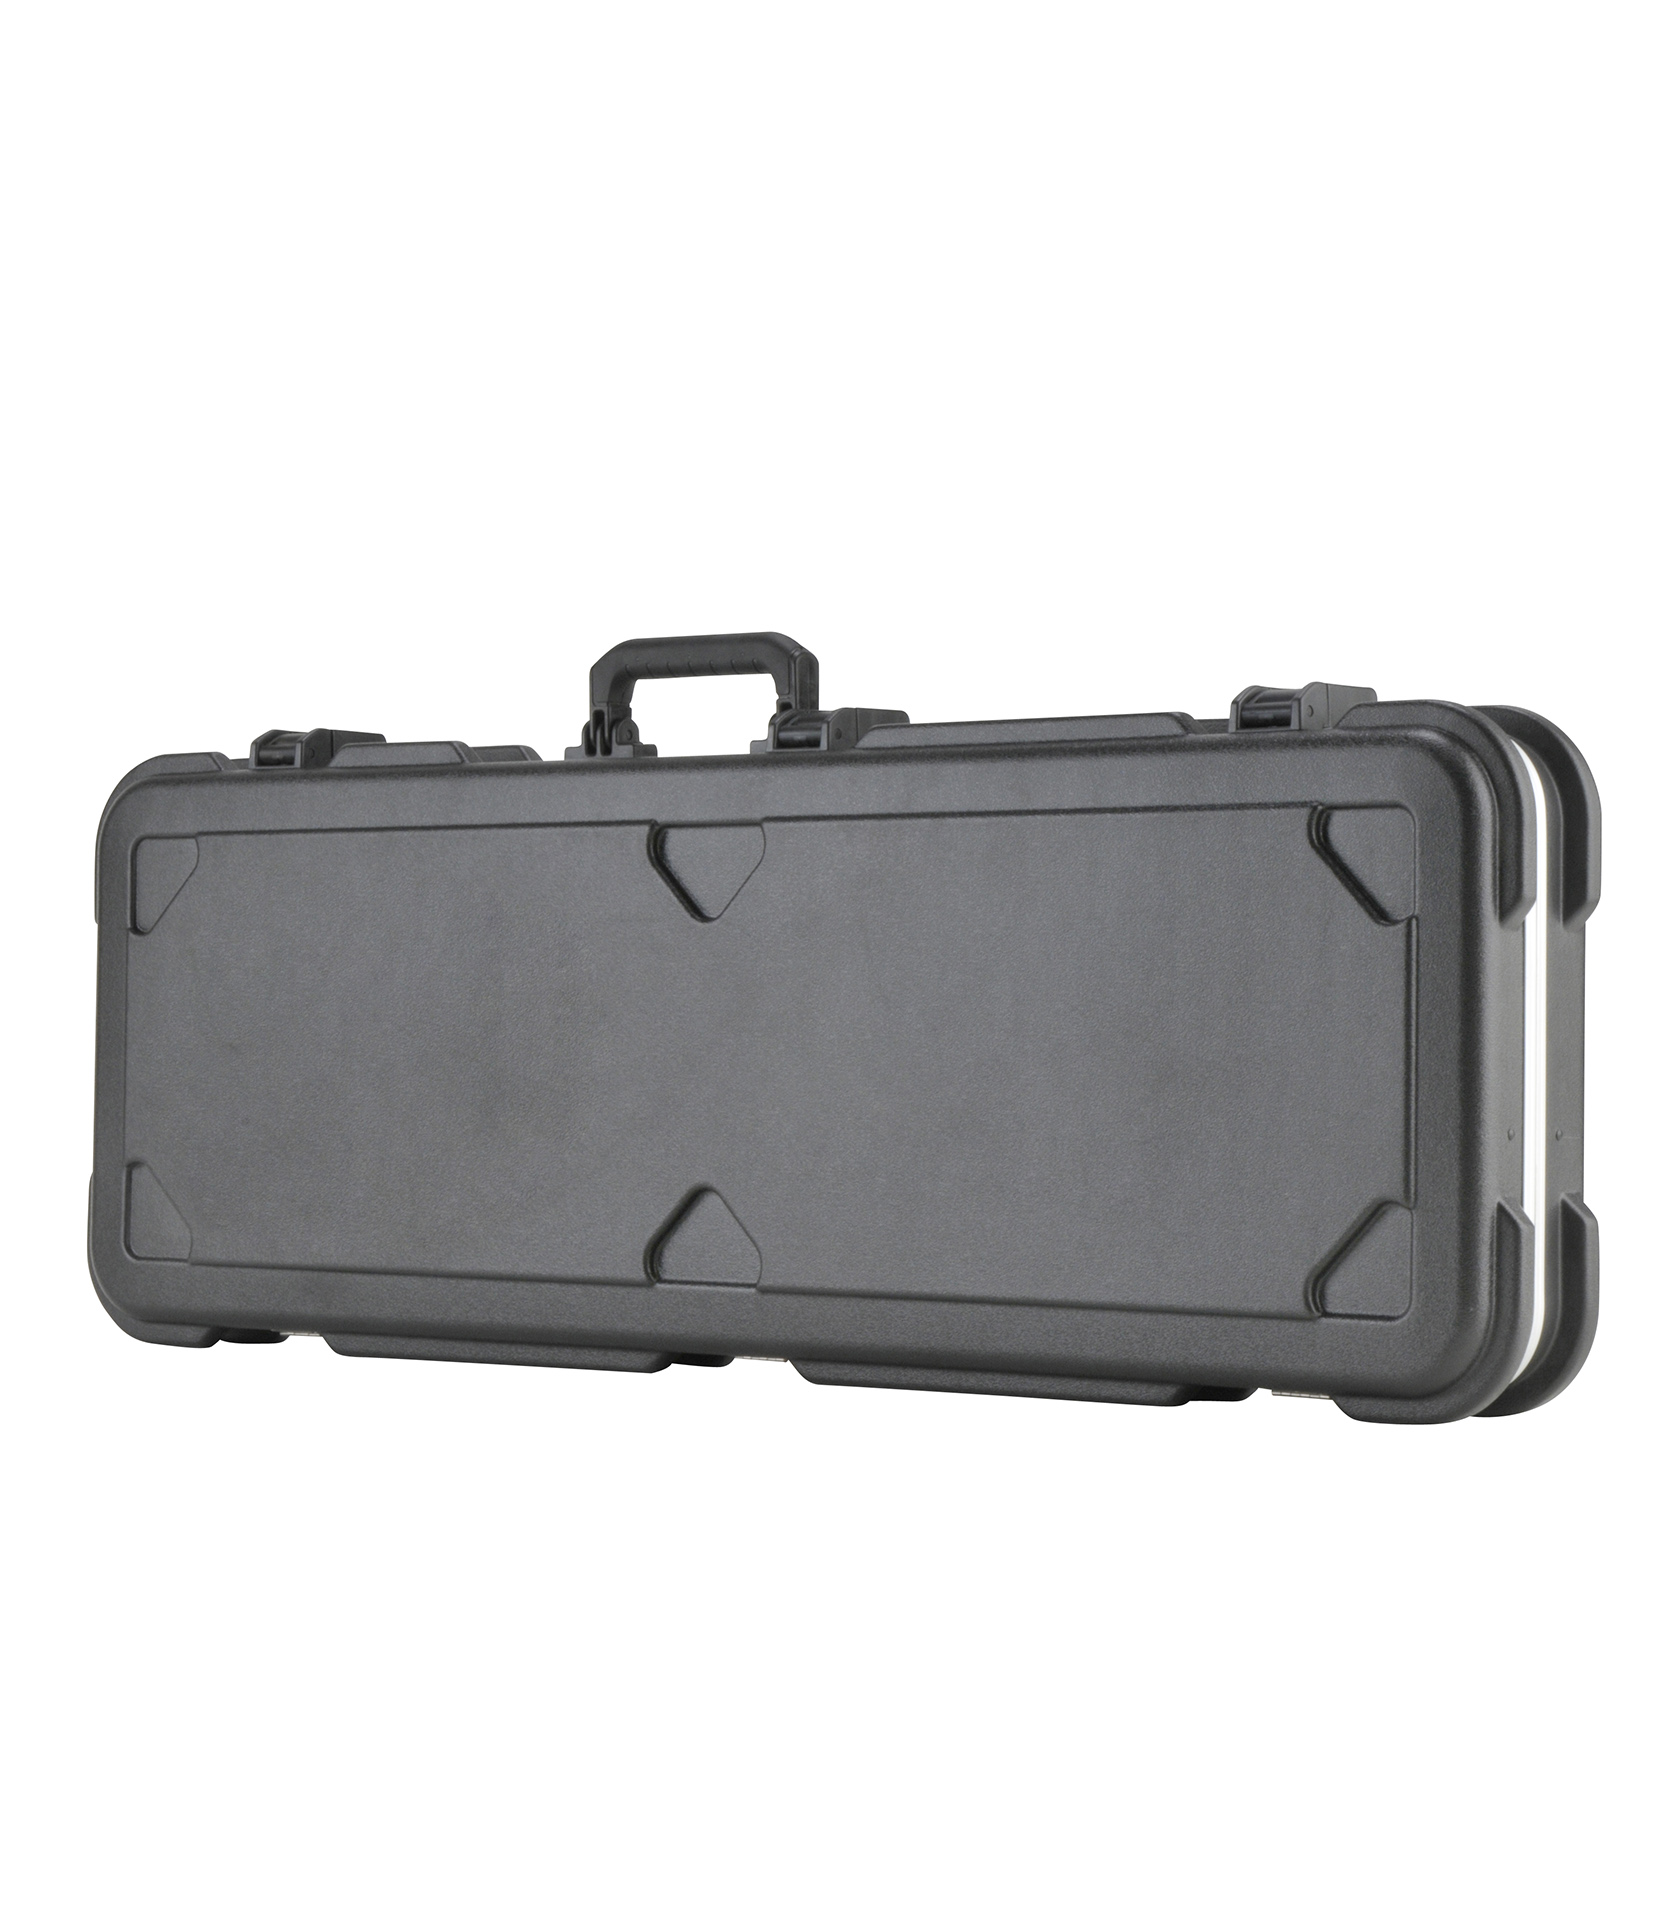 buy skb 1skb 66 electric rectangular hardshelltsa latc